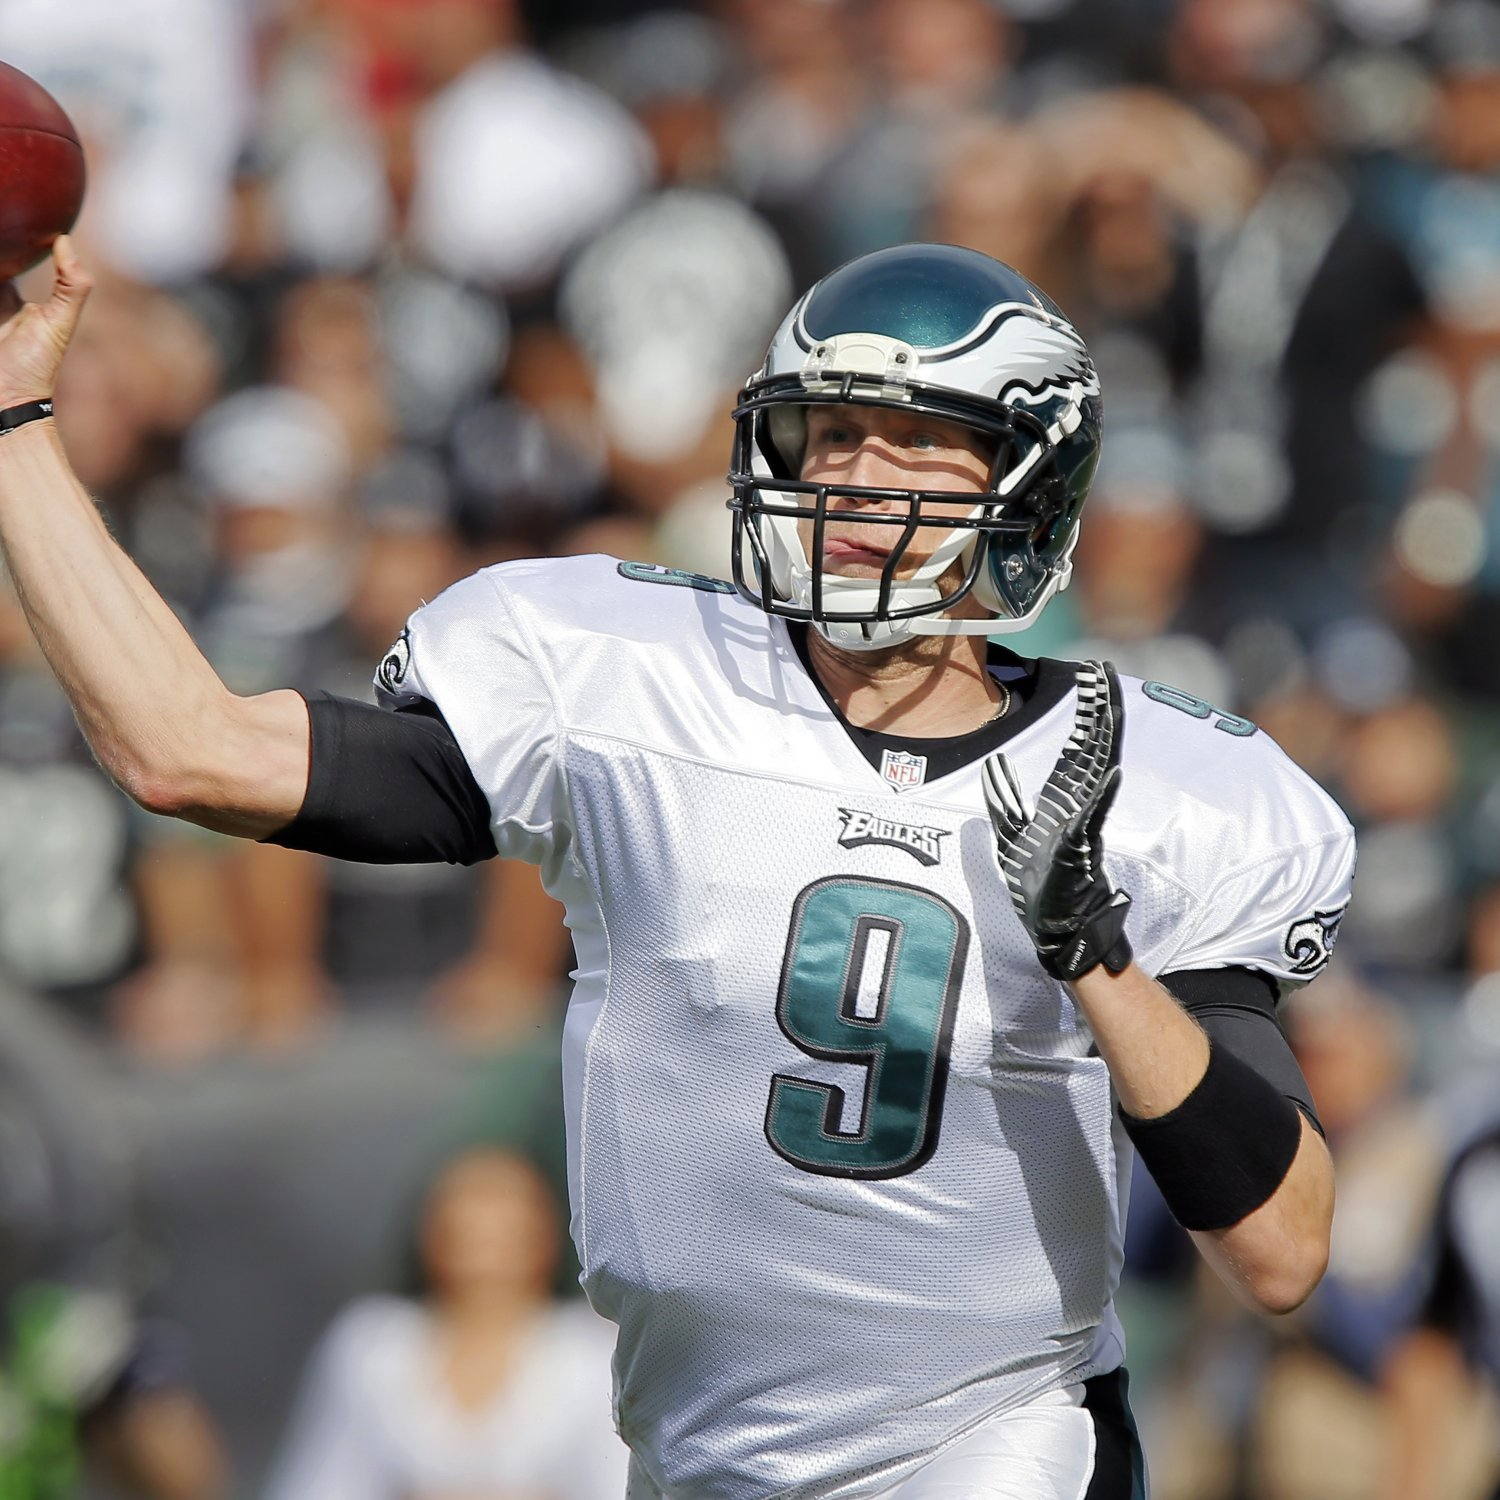 hi-res-186730671-quarterback-nick-foles-of-the-philadelphia-eagles_crop_exact.jpg